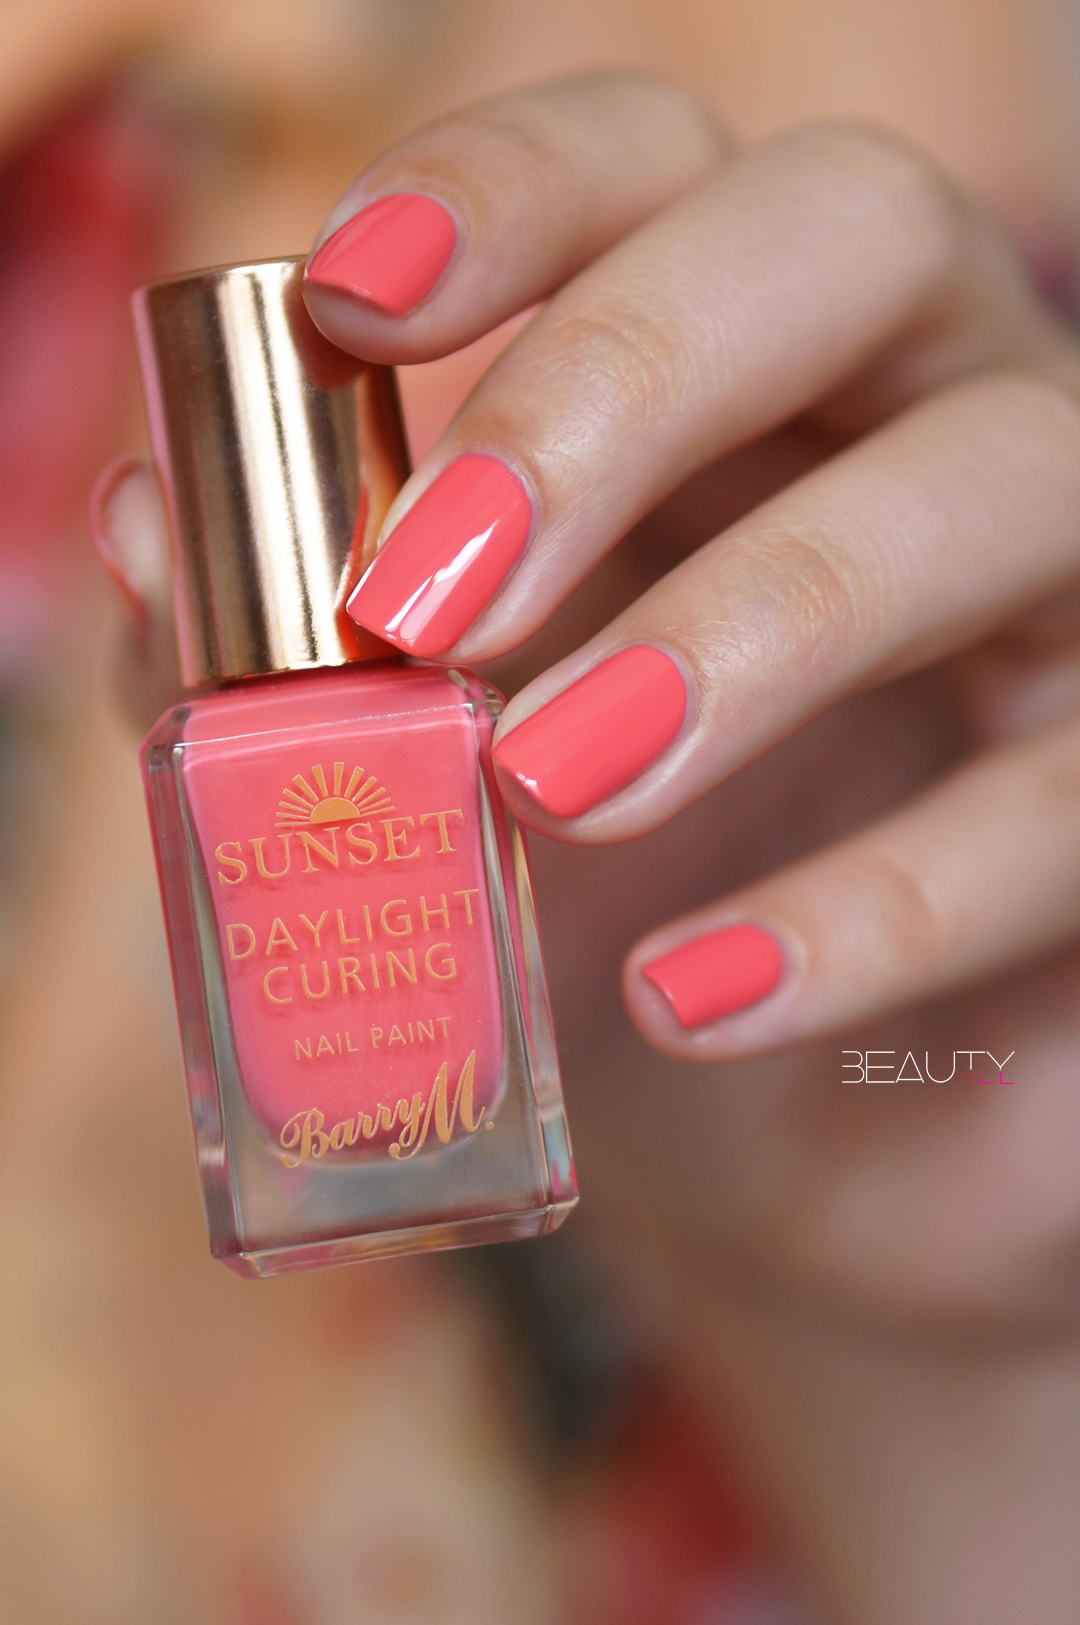 Barry M Sunset Daylight Curing nagellak